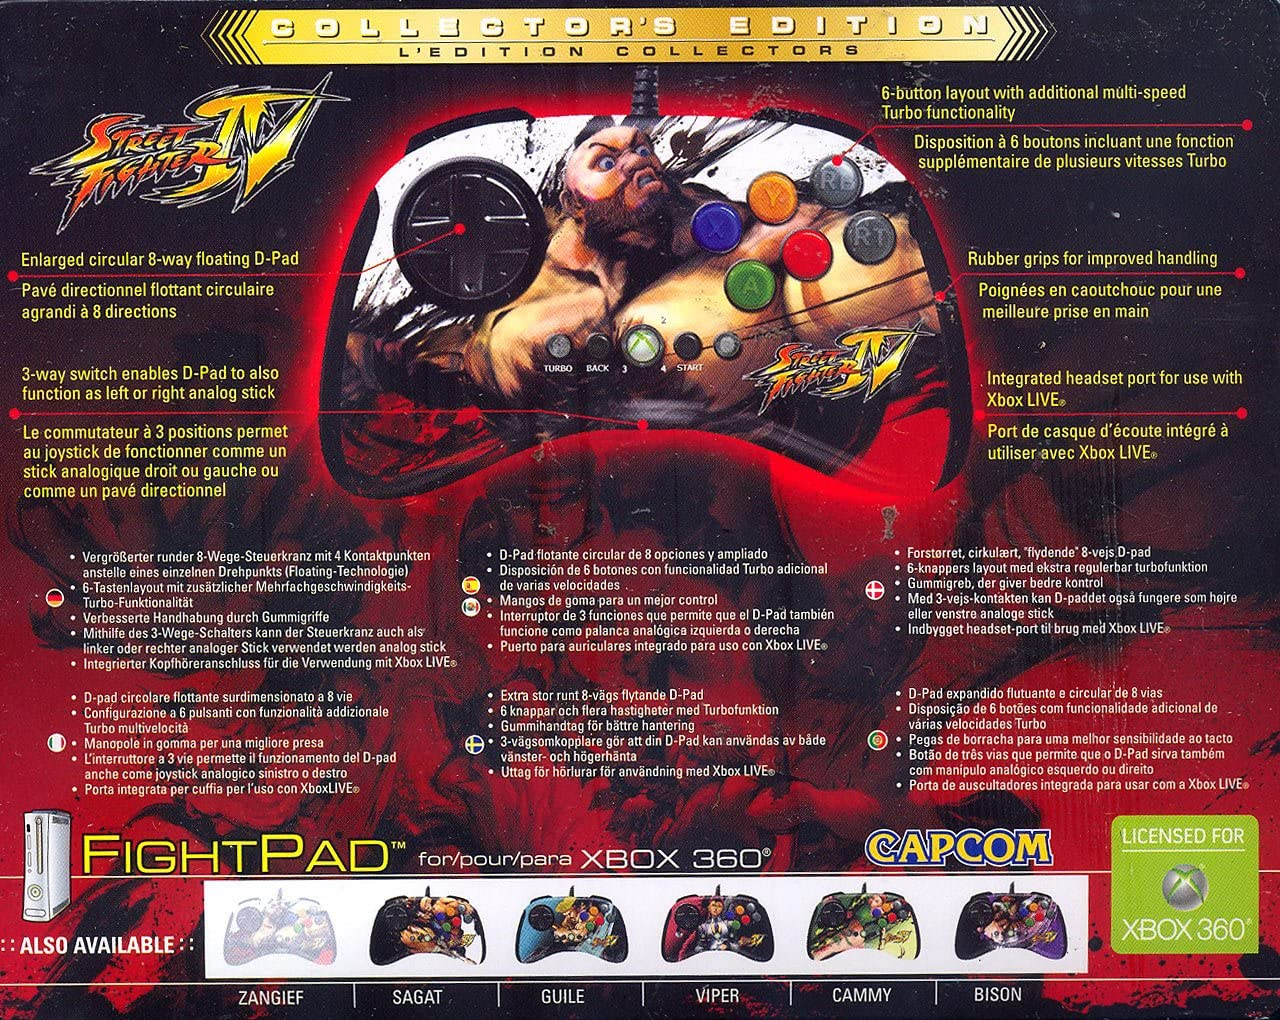 Amazon.com: Xbox 360 Street Fighter IV Round 2 FightPad - Bison: Video Games